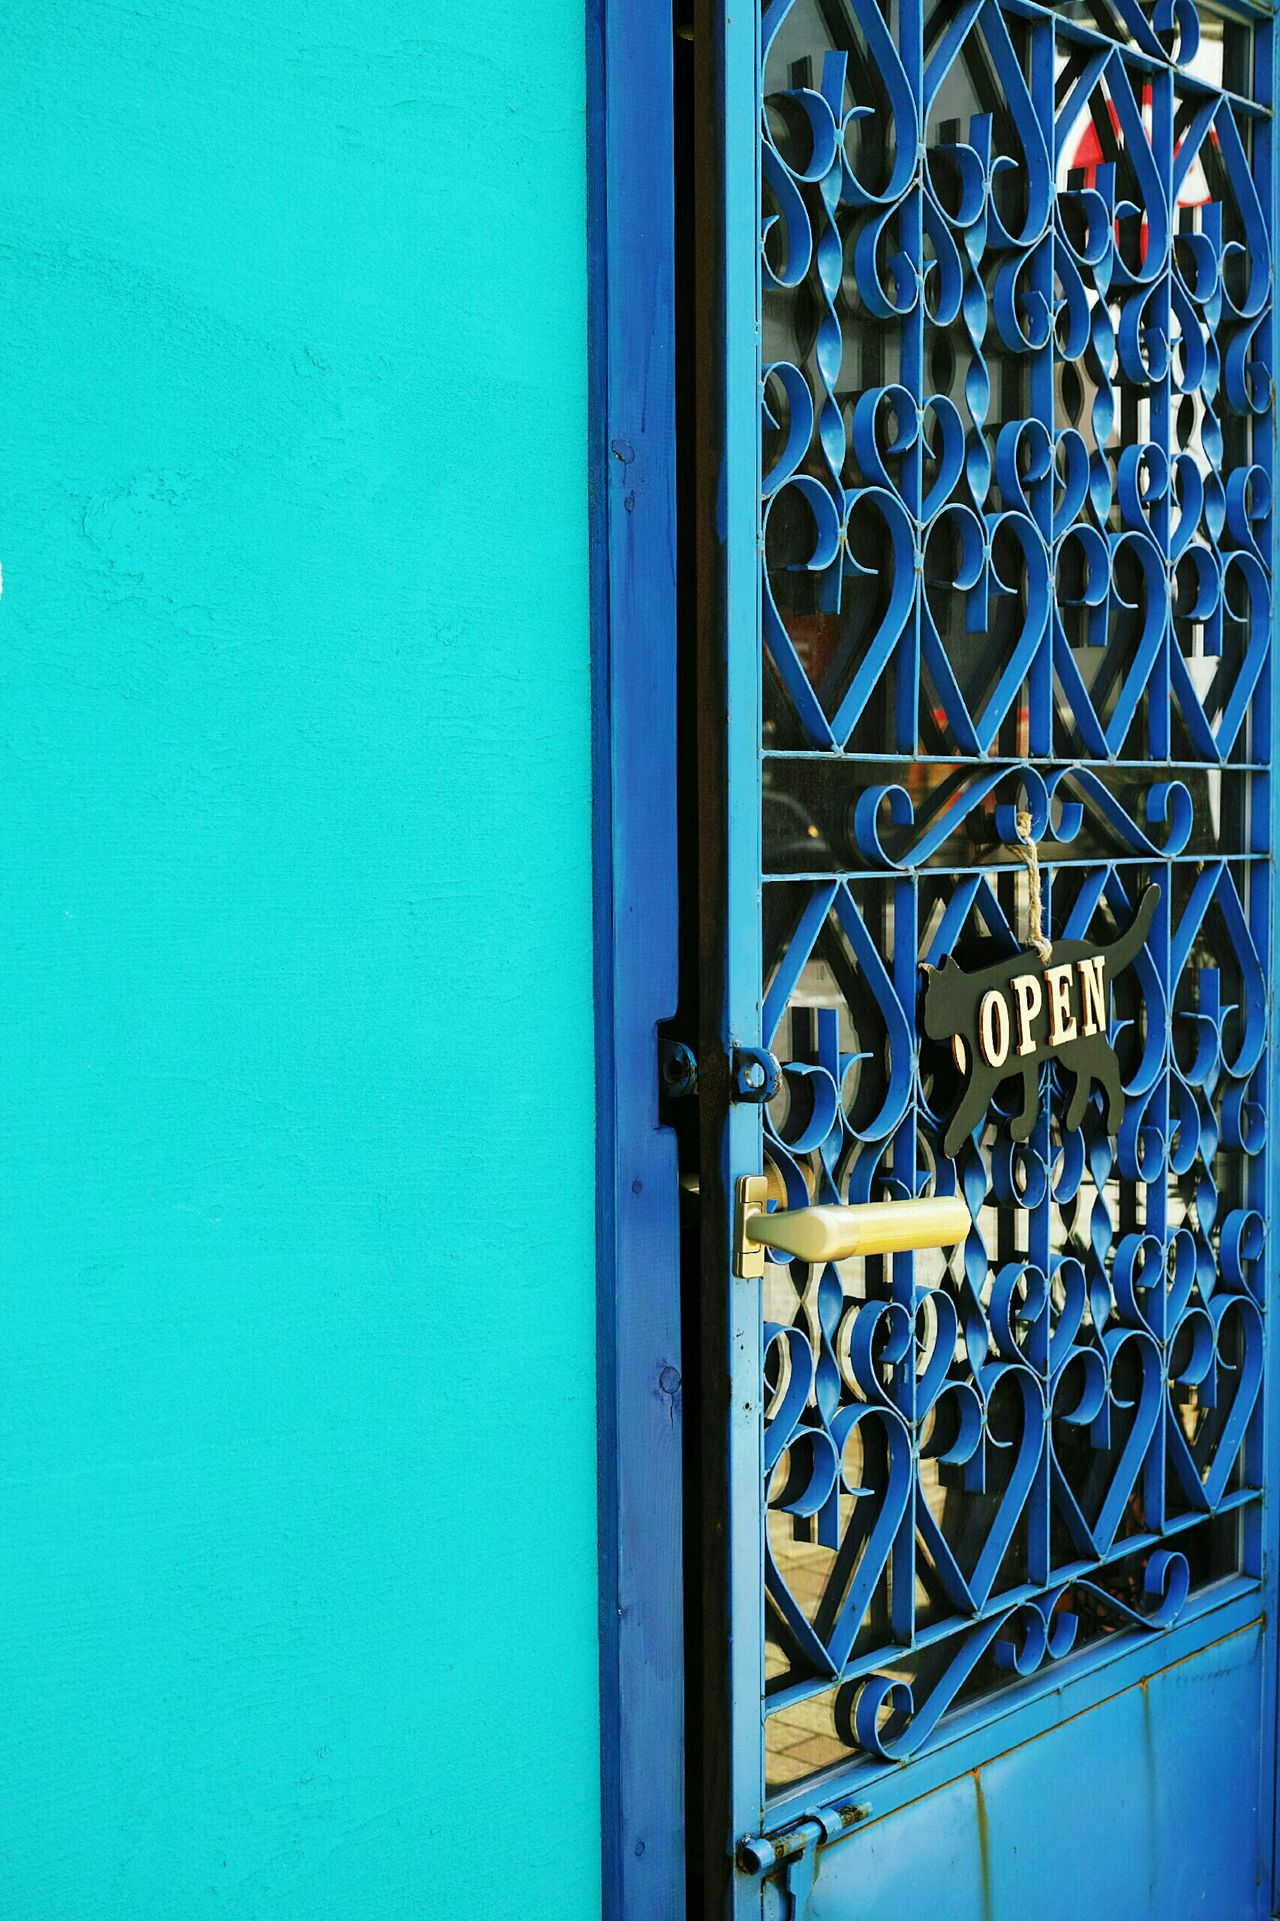 Showcase June Door Blue Turquoise By Motorola Turquoise Doorporn Doors Lover Interior Design Architectural Detail Streetphotography Streetphoto_color Street Photography Getting Inspired EyeEm Gallery Open Edit